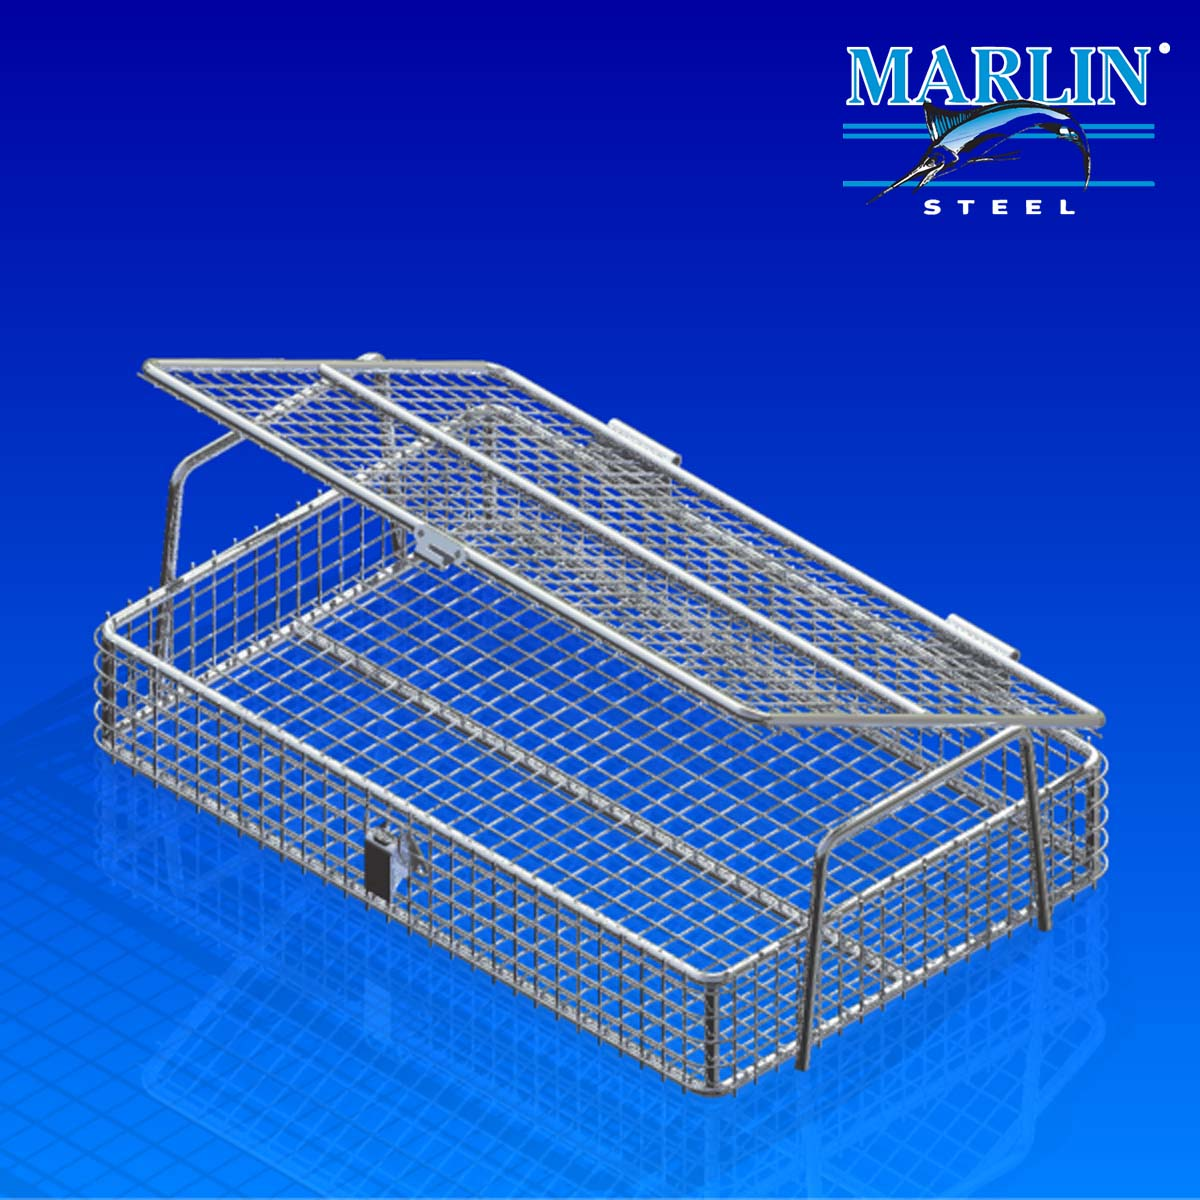 Marlin Steel Basket with Handles 825001